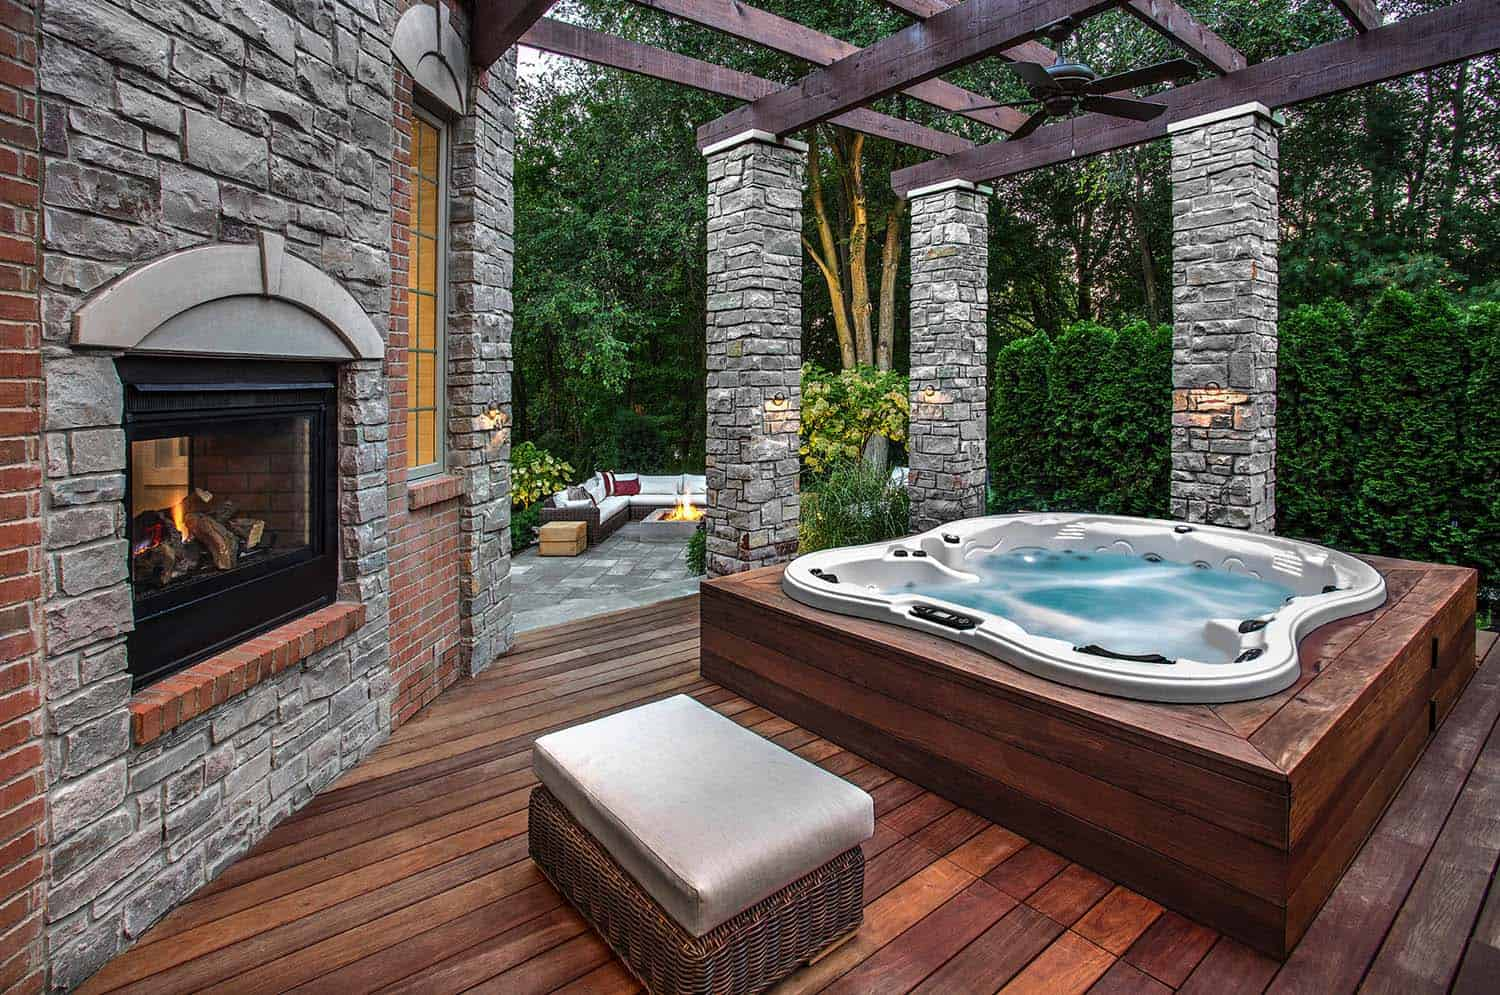 40+ Outstanding Hot Tub Ideas To Create A Backyard Oasis on Deck And Hot Tub Ideas  id=42607